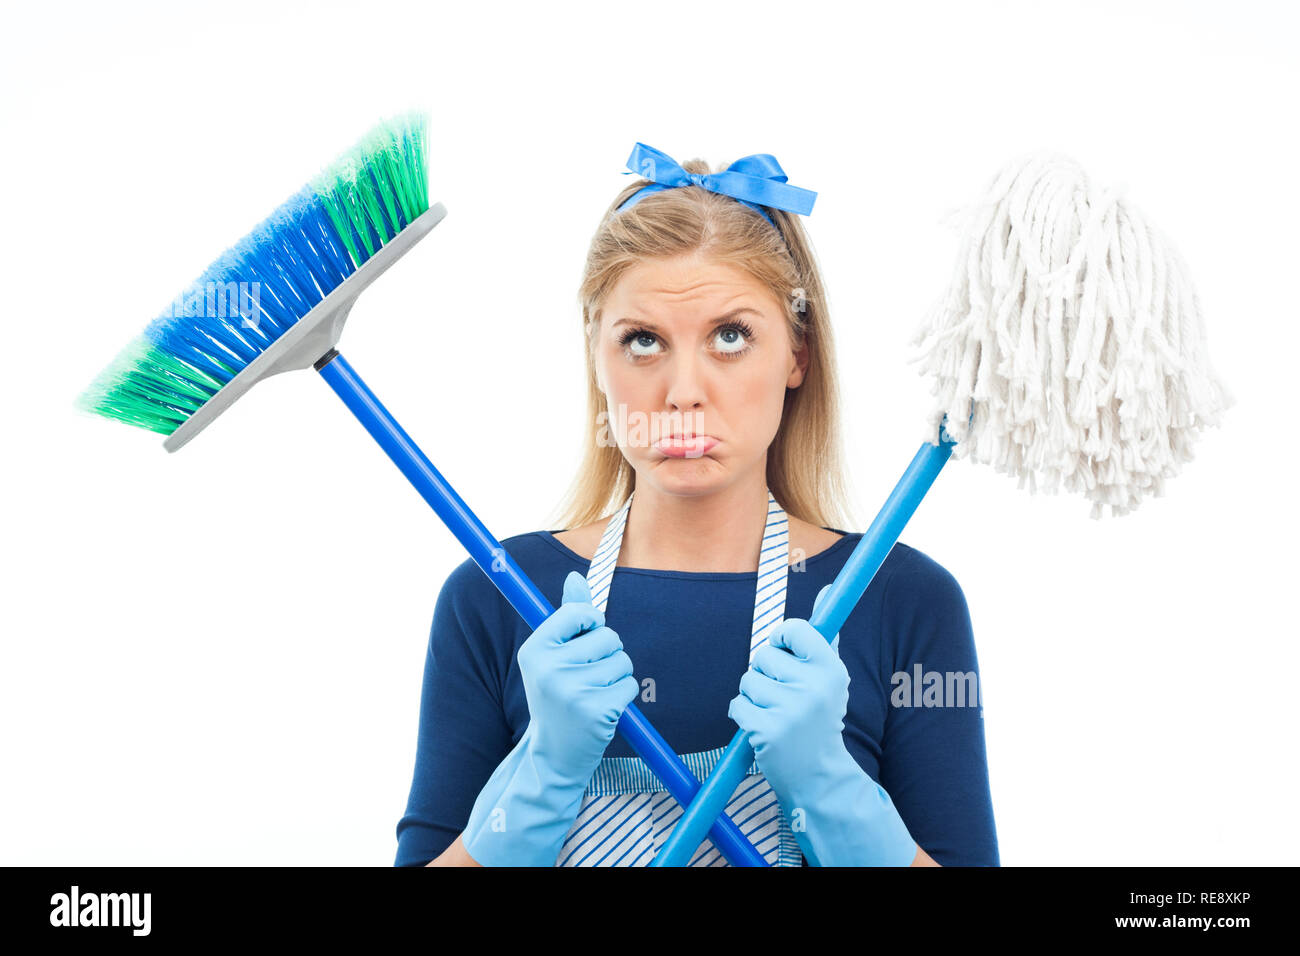 Too much cleaning - Stock Image